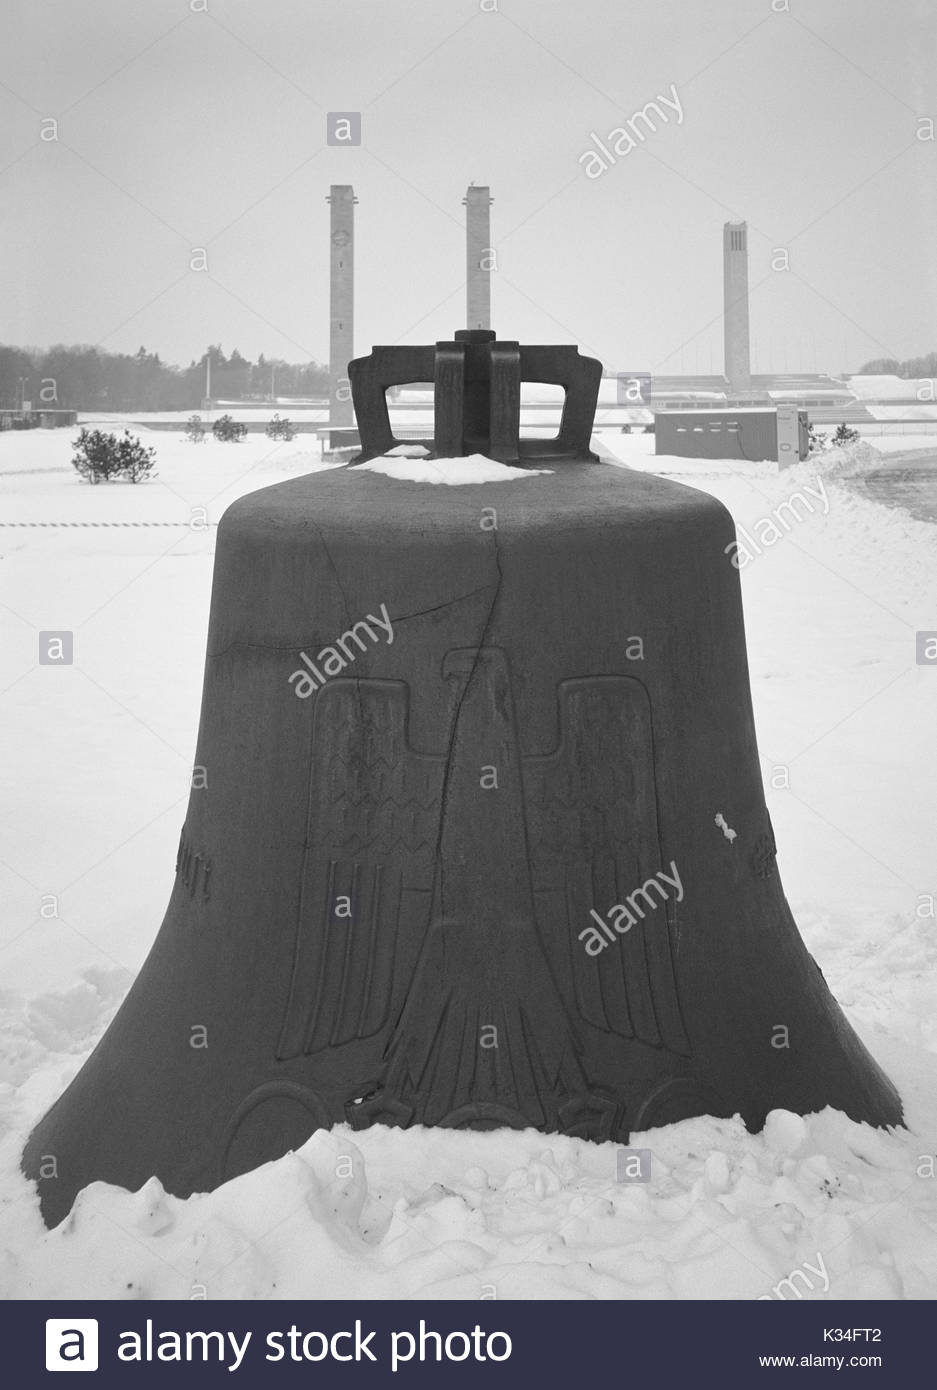 Memorial Bell from 1936 Olympics dedicated to all War Dead, Berlin, Germany - Stock Image